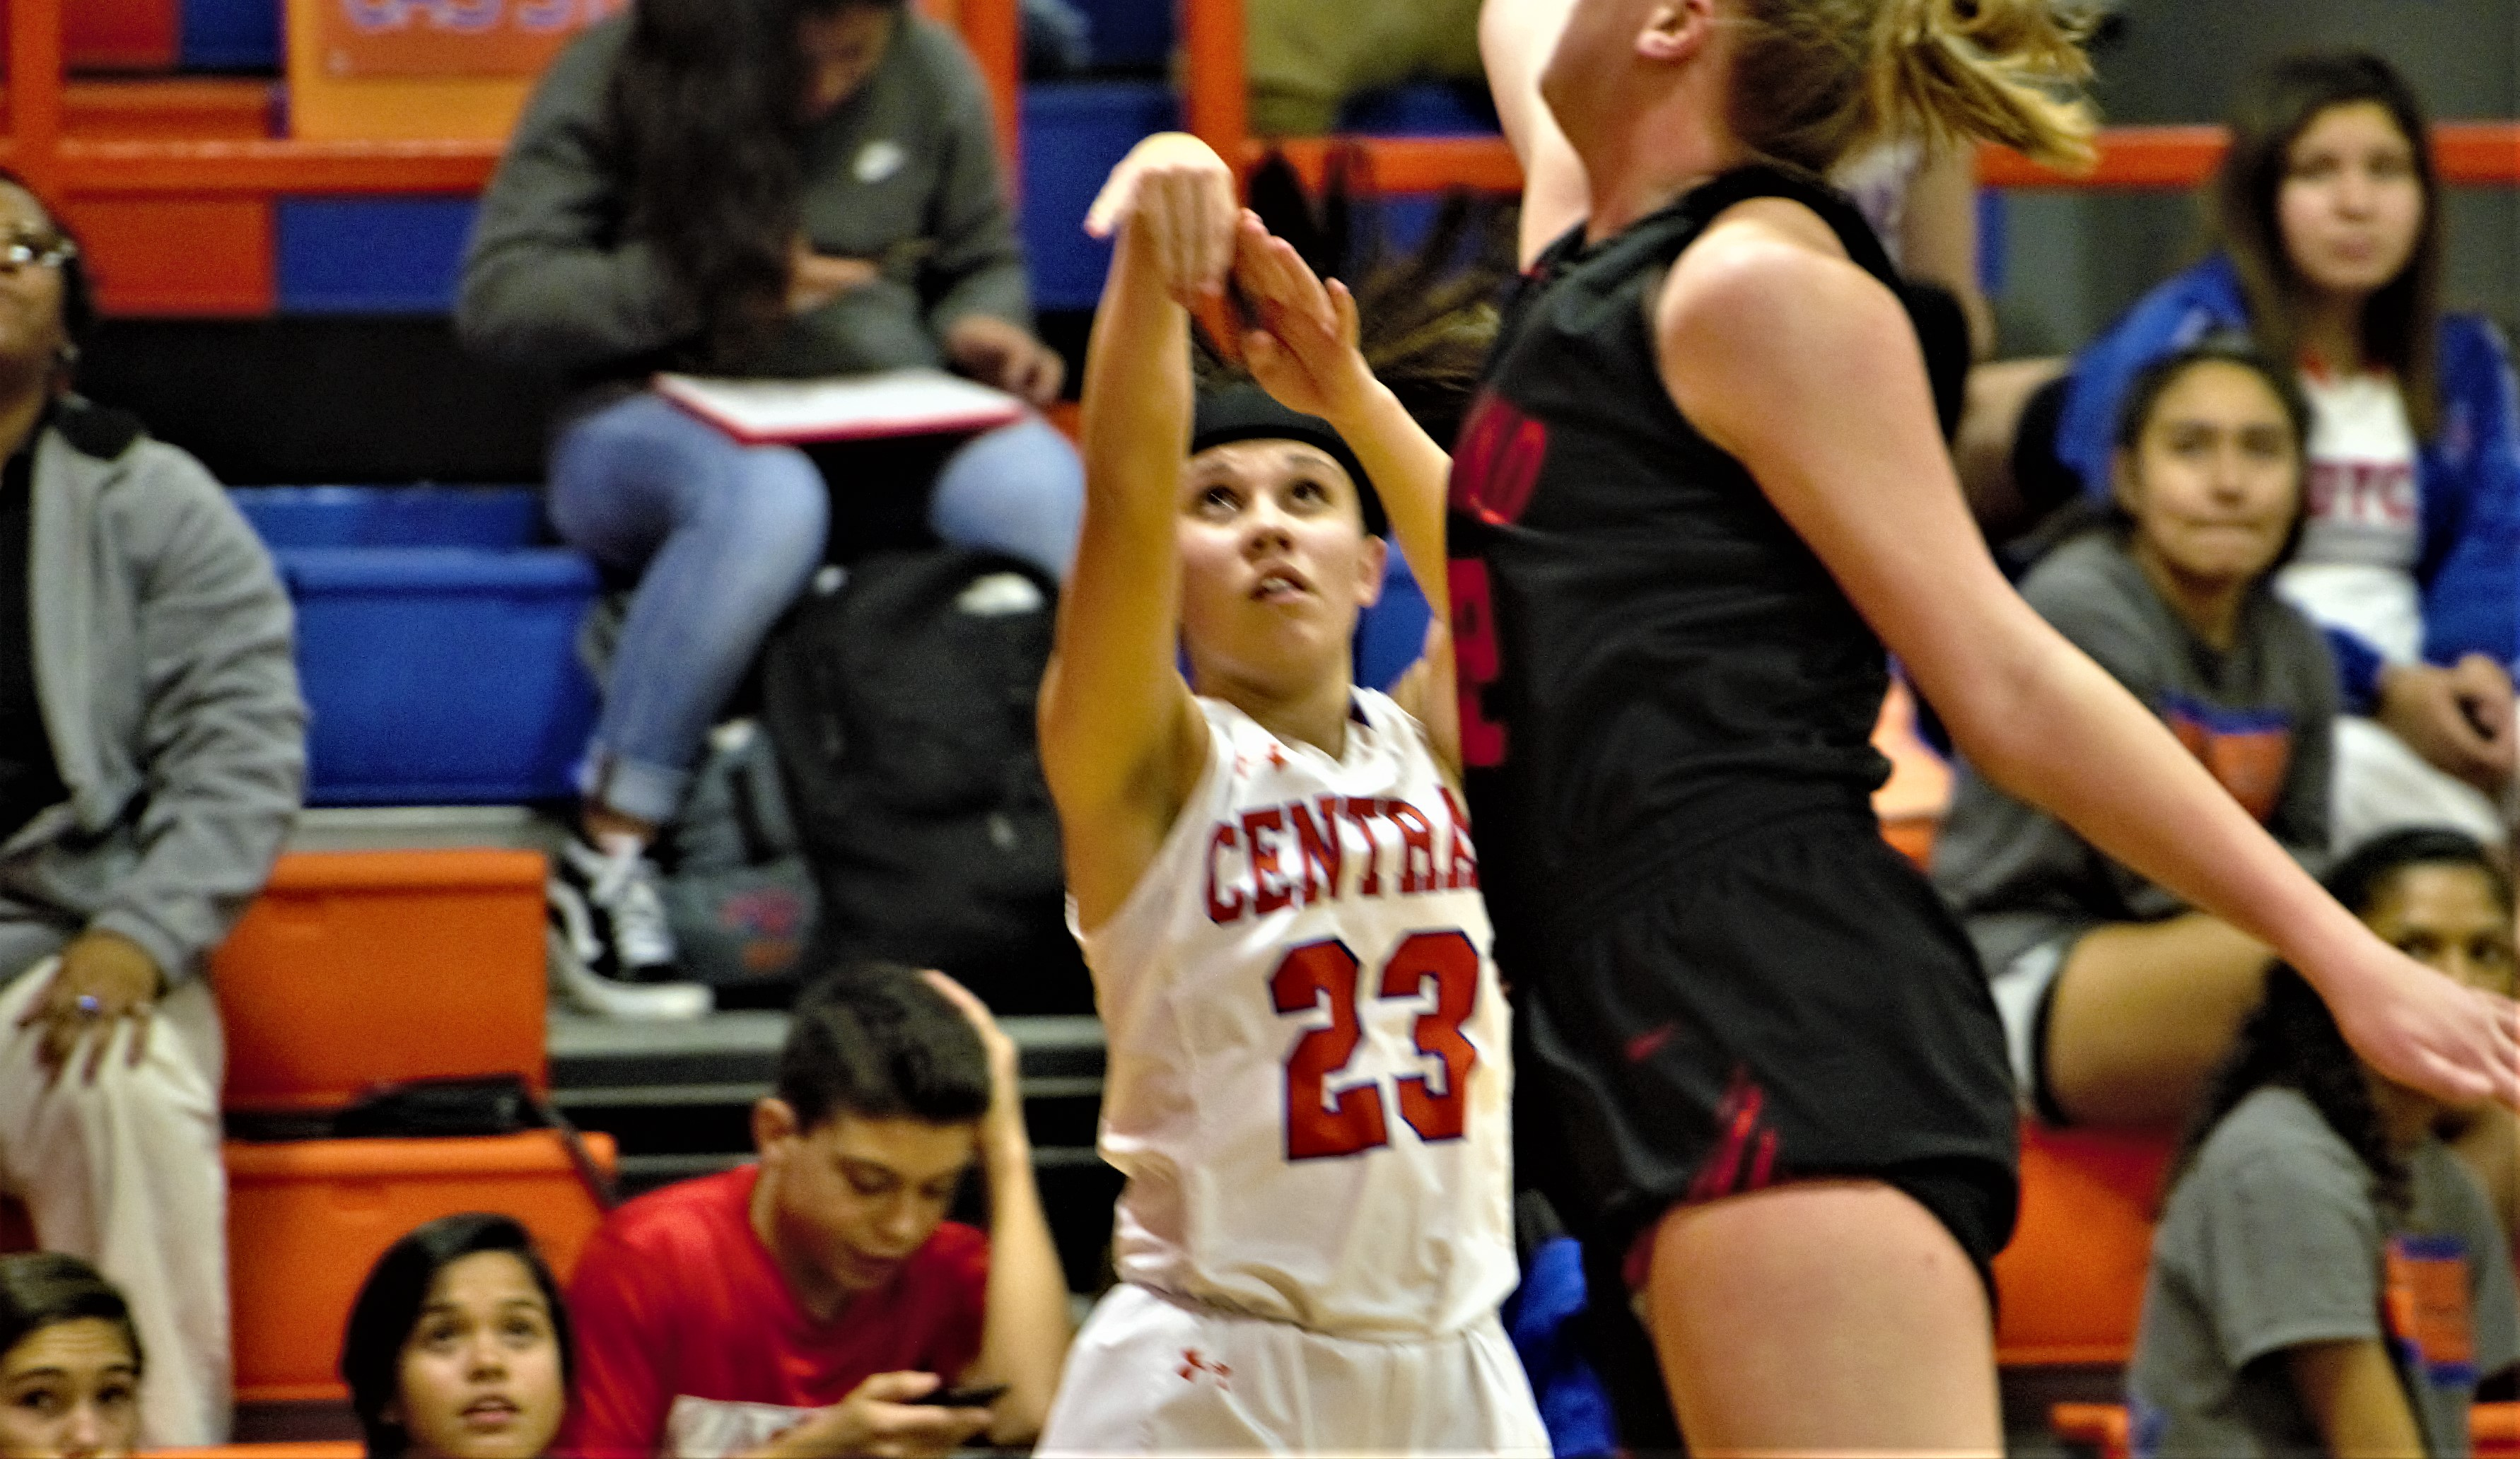 Central's Morgan Walker (23) shoots a three pointer against Levelland. Nov. 19, 2018 (LIVE! Photo/Sam Fowler)